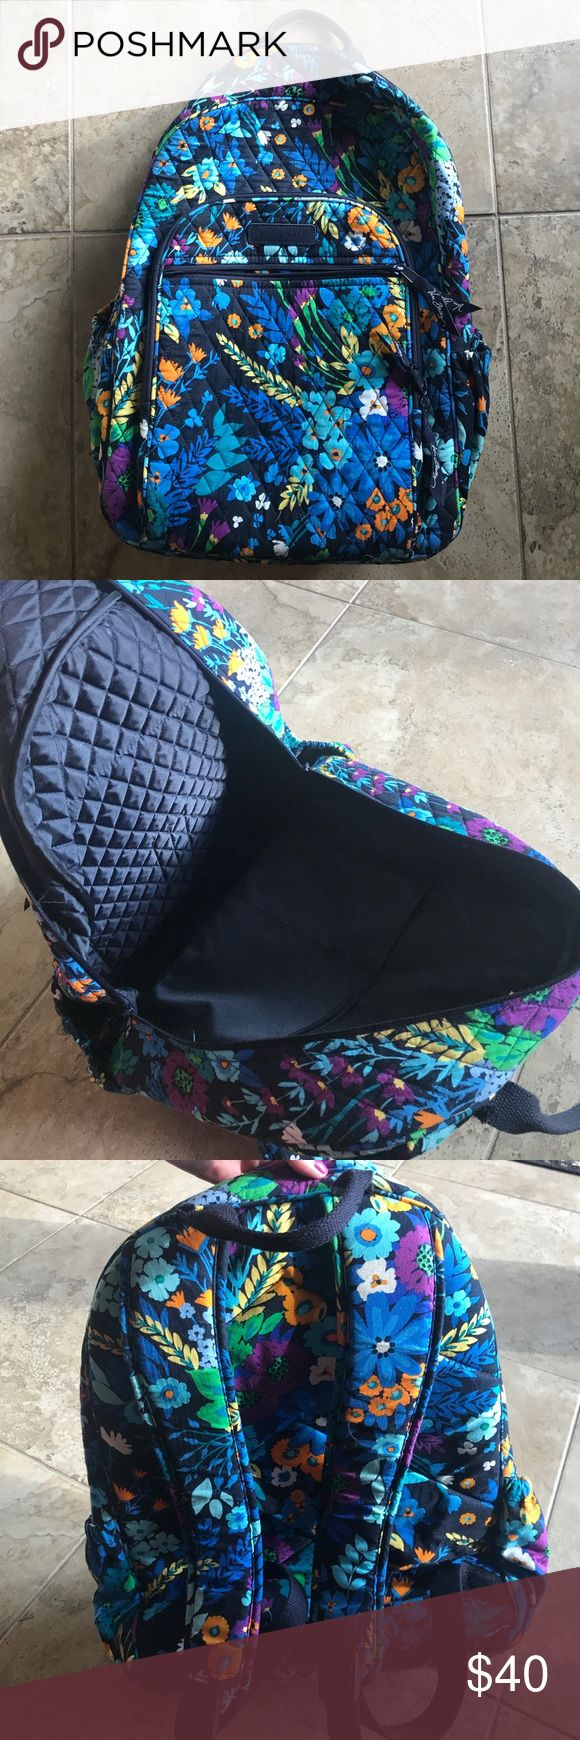 2017 Vera Bradley Backpack Brand new, maybe used once! No scratches, tears or fading. Vera Bradley Bags Backpacks